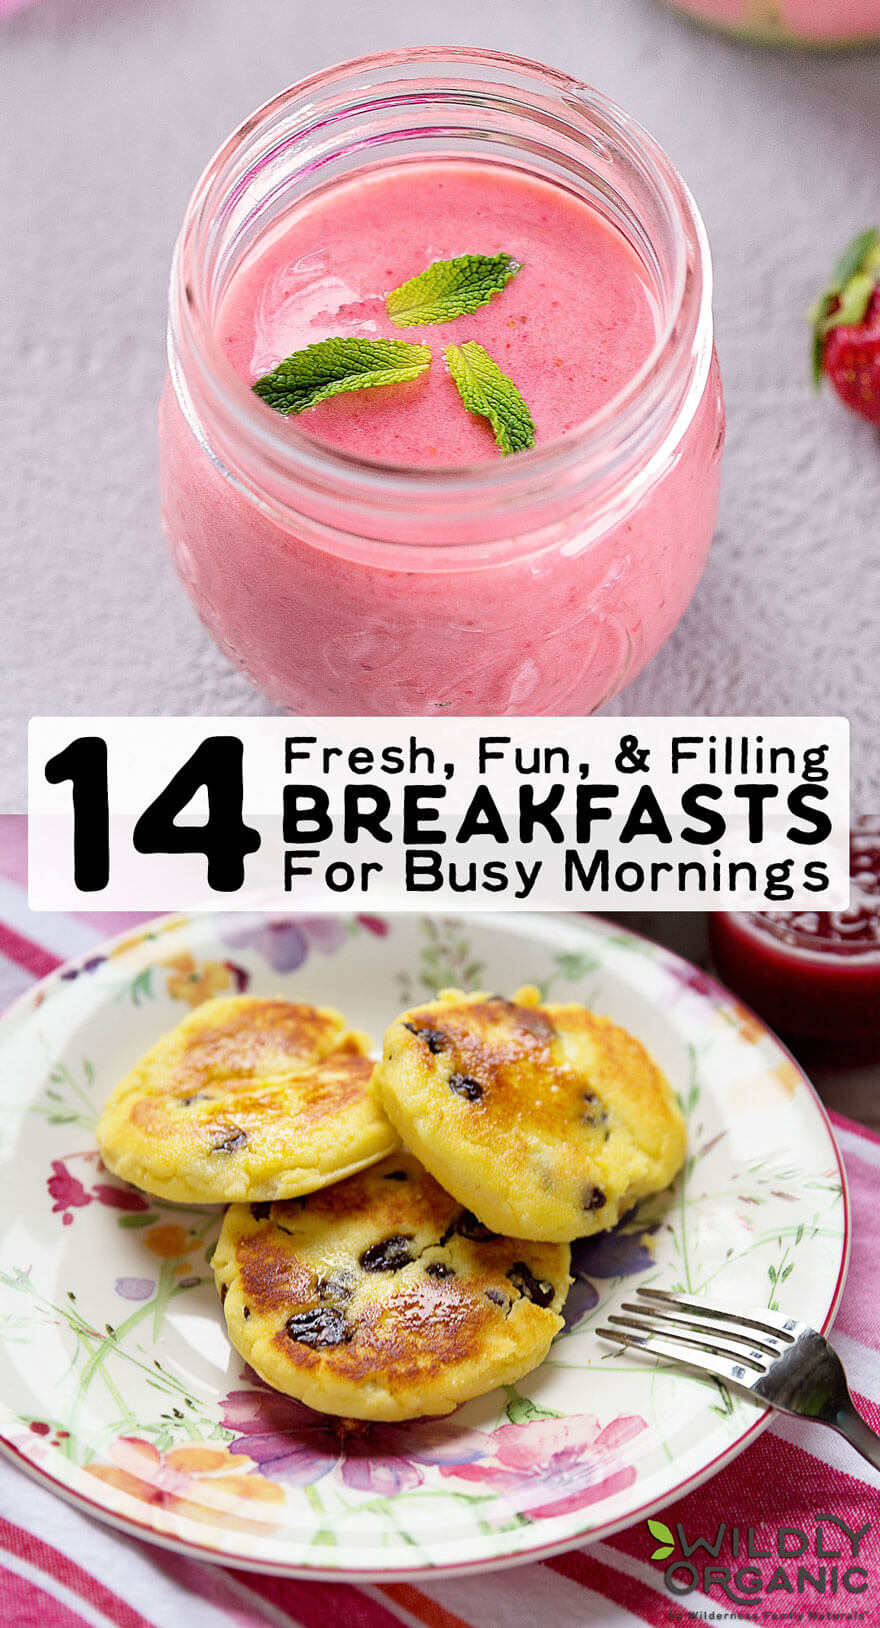 14 Fresh, Fun, & Filling Breakfasts For Busy Mornings | The start of a new school year means it's time to think about the most important part of your child's day... Breakfast! Add these fresh, fun, and filling breakfasts for busy mornings to your arsenal and say hello to stress-free mornings! | WildlyOrganic.com